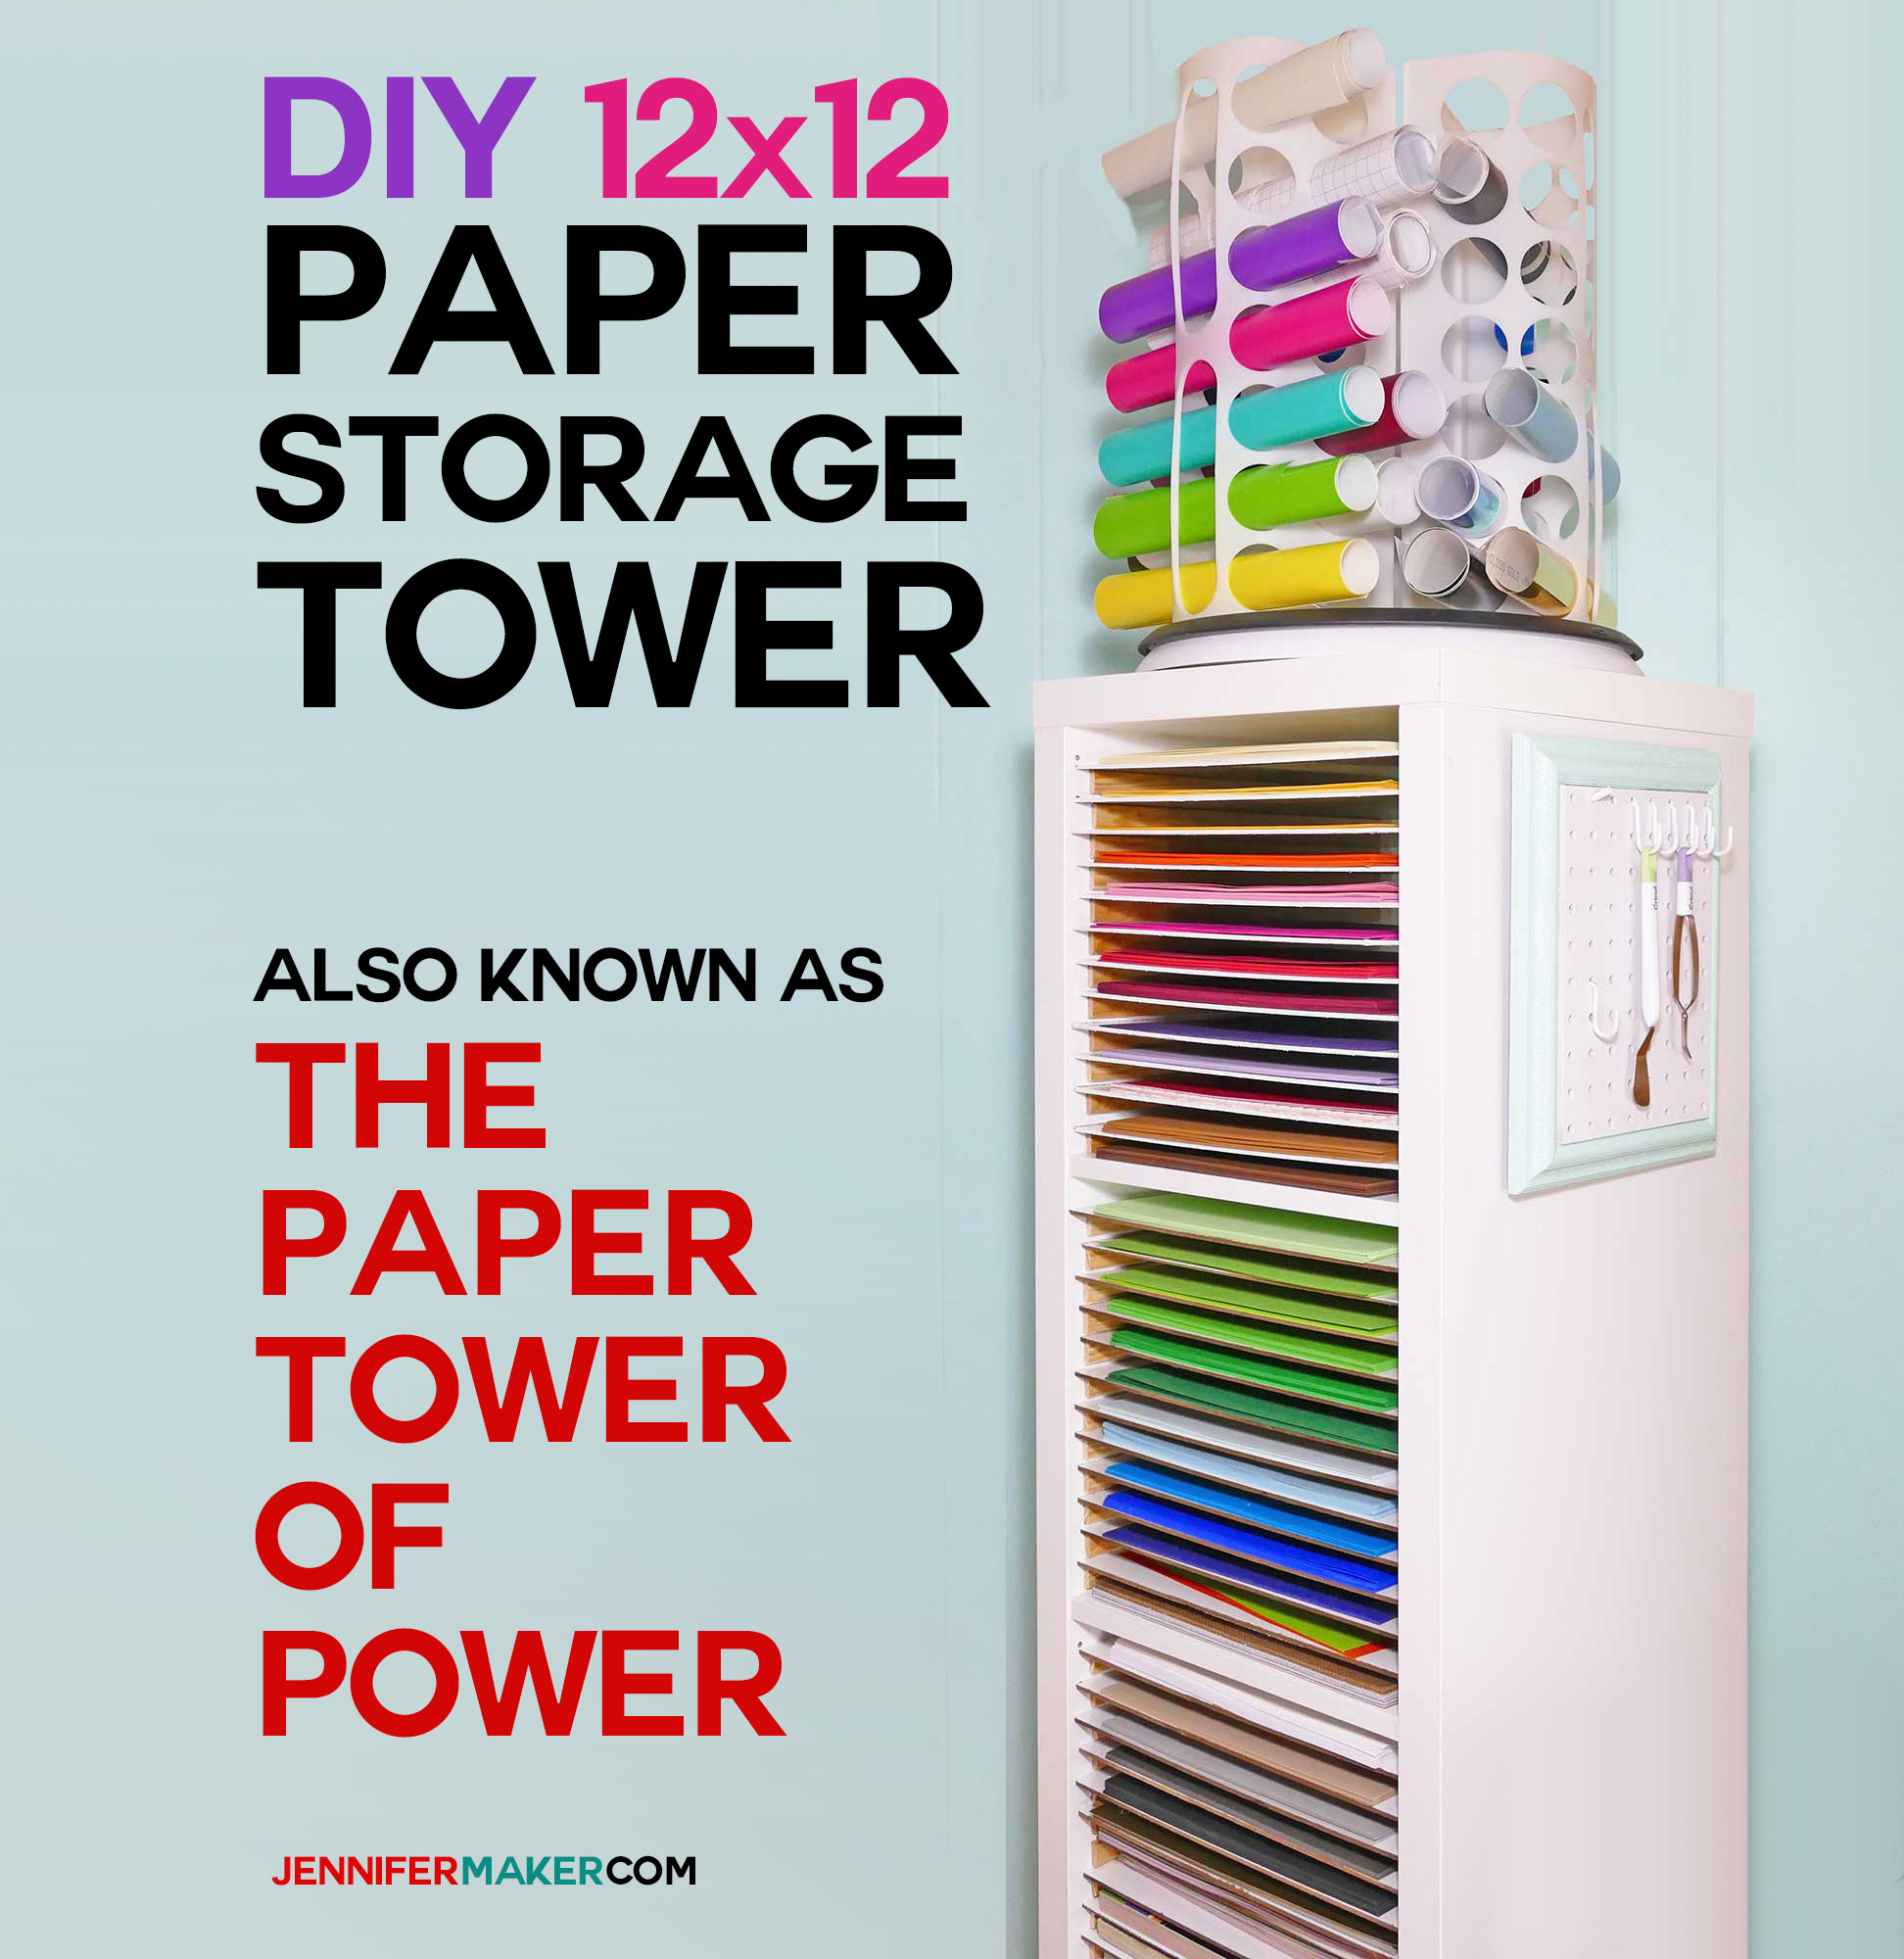 DIY 12x12 Vertical Scrapbook Paper Storage Organizer Tower